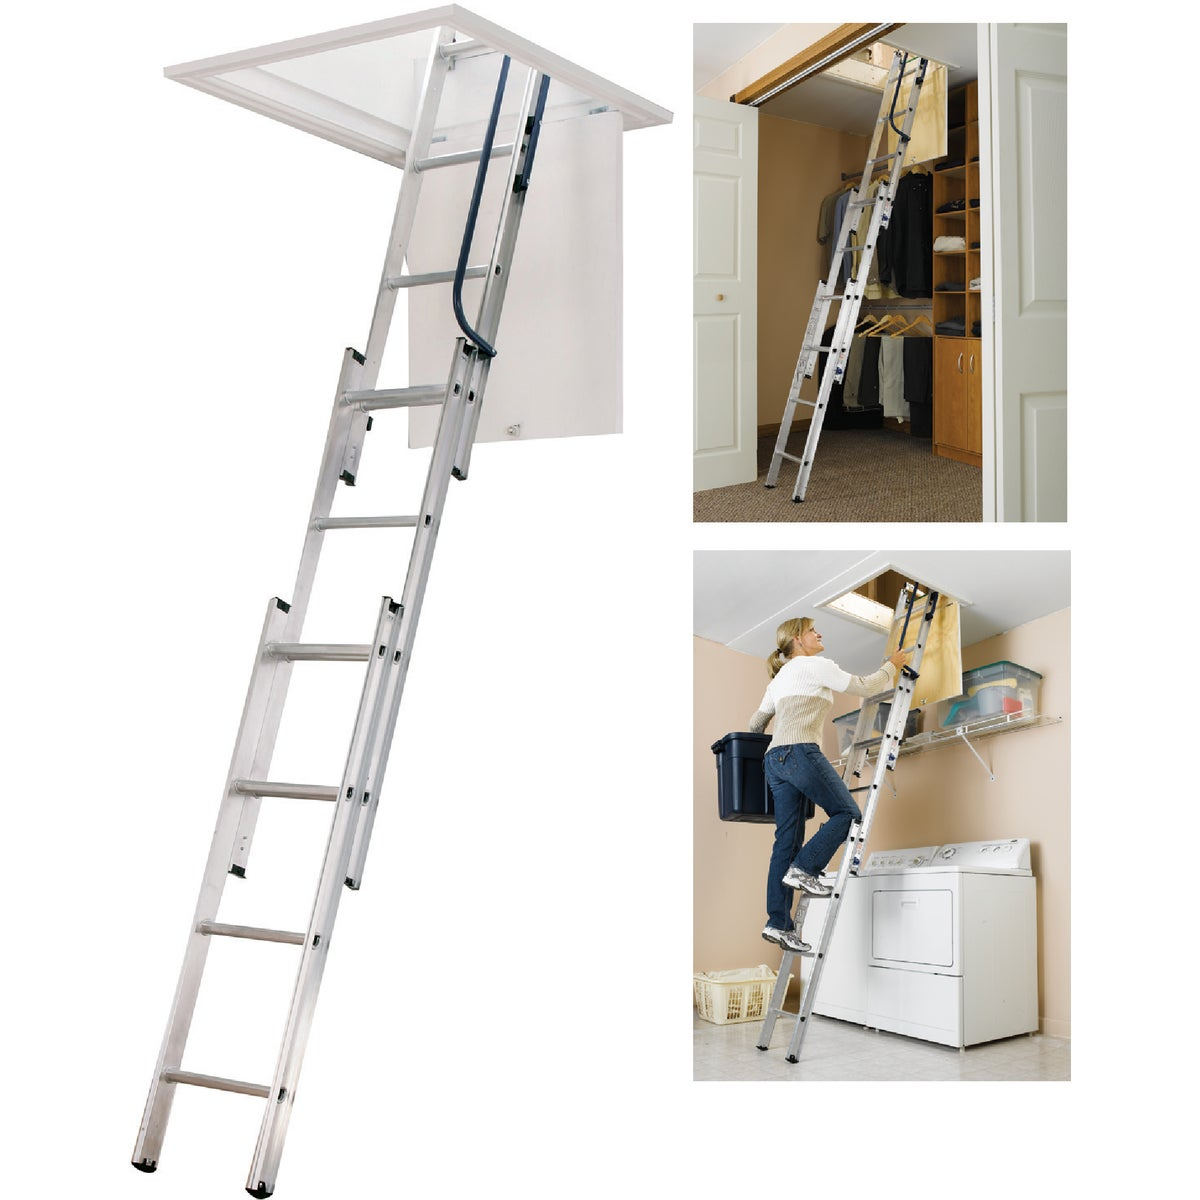 UNIV ALUM ATTIC LADDER - AA1510 by Werner Ladder